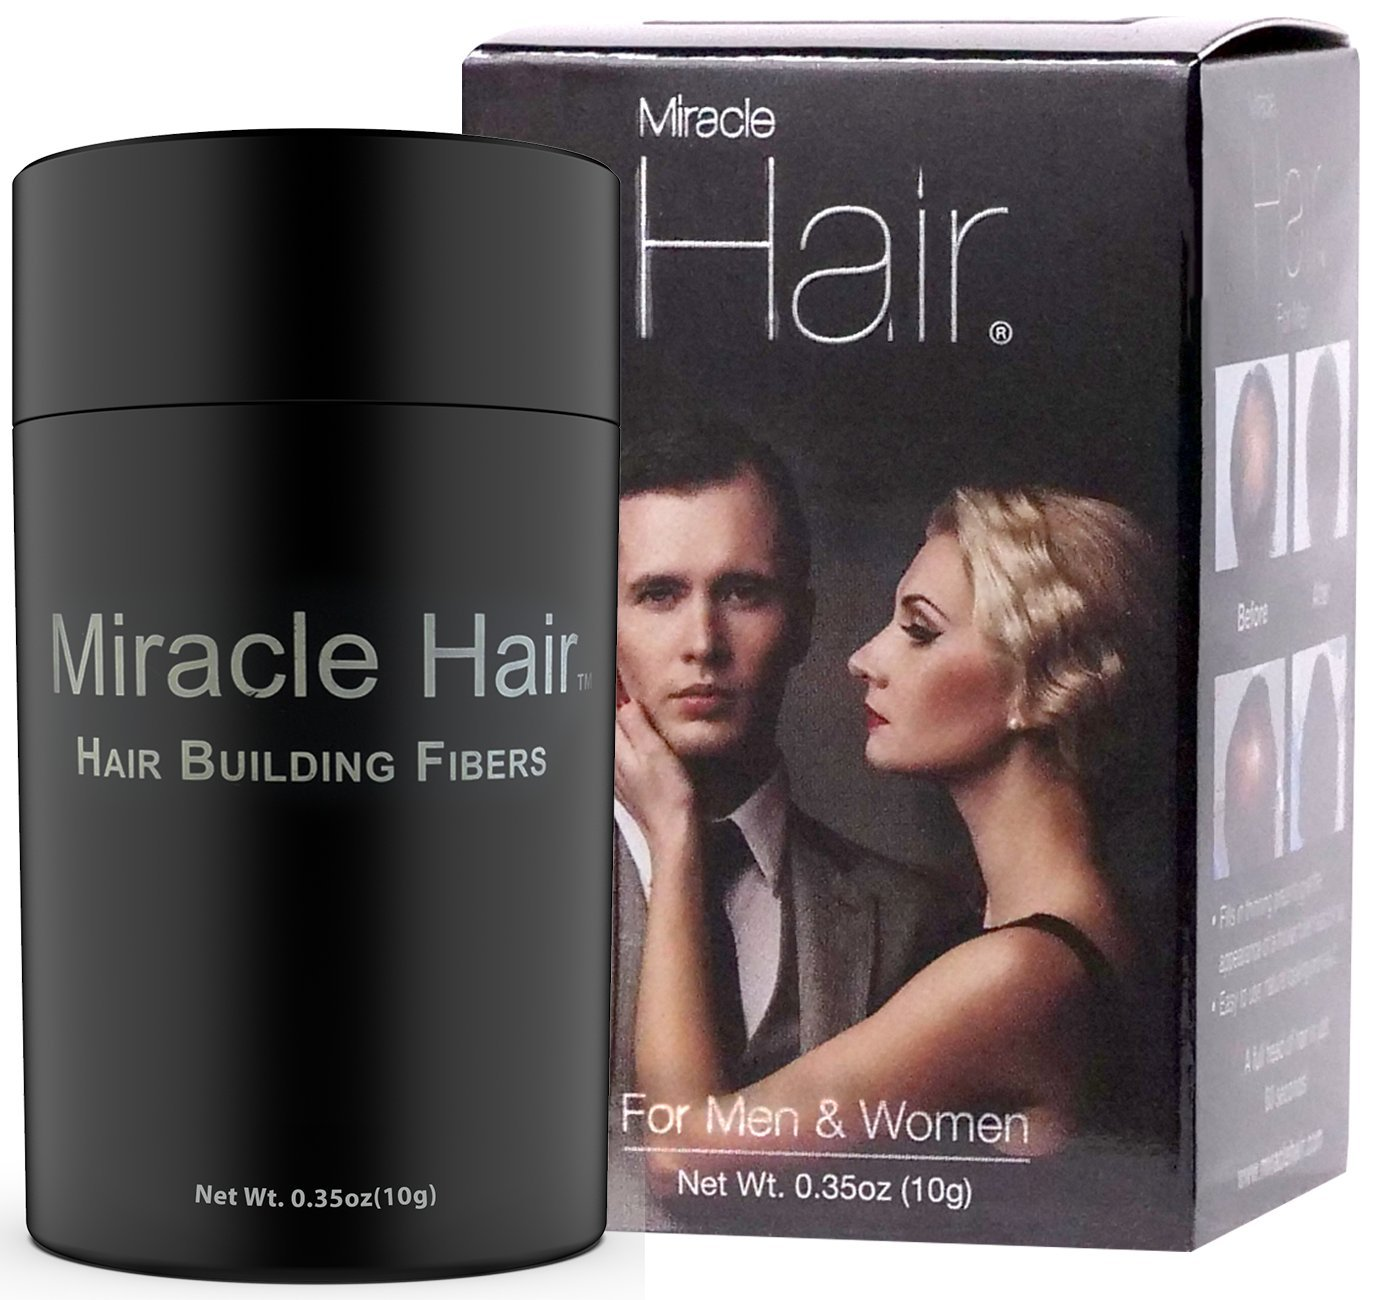 Miracle Hair – Hair Loss Concealer – Highest Quality Natural Hair Building Fibers Thickens Thinning Hair Instantly for Men And Women 10 Grams (30 Day Supply)